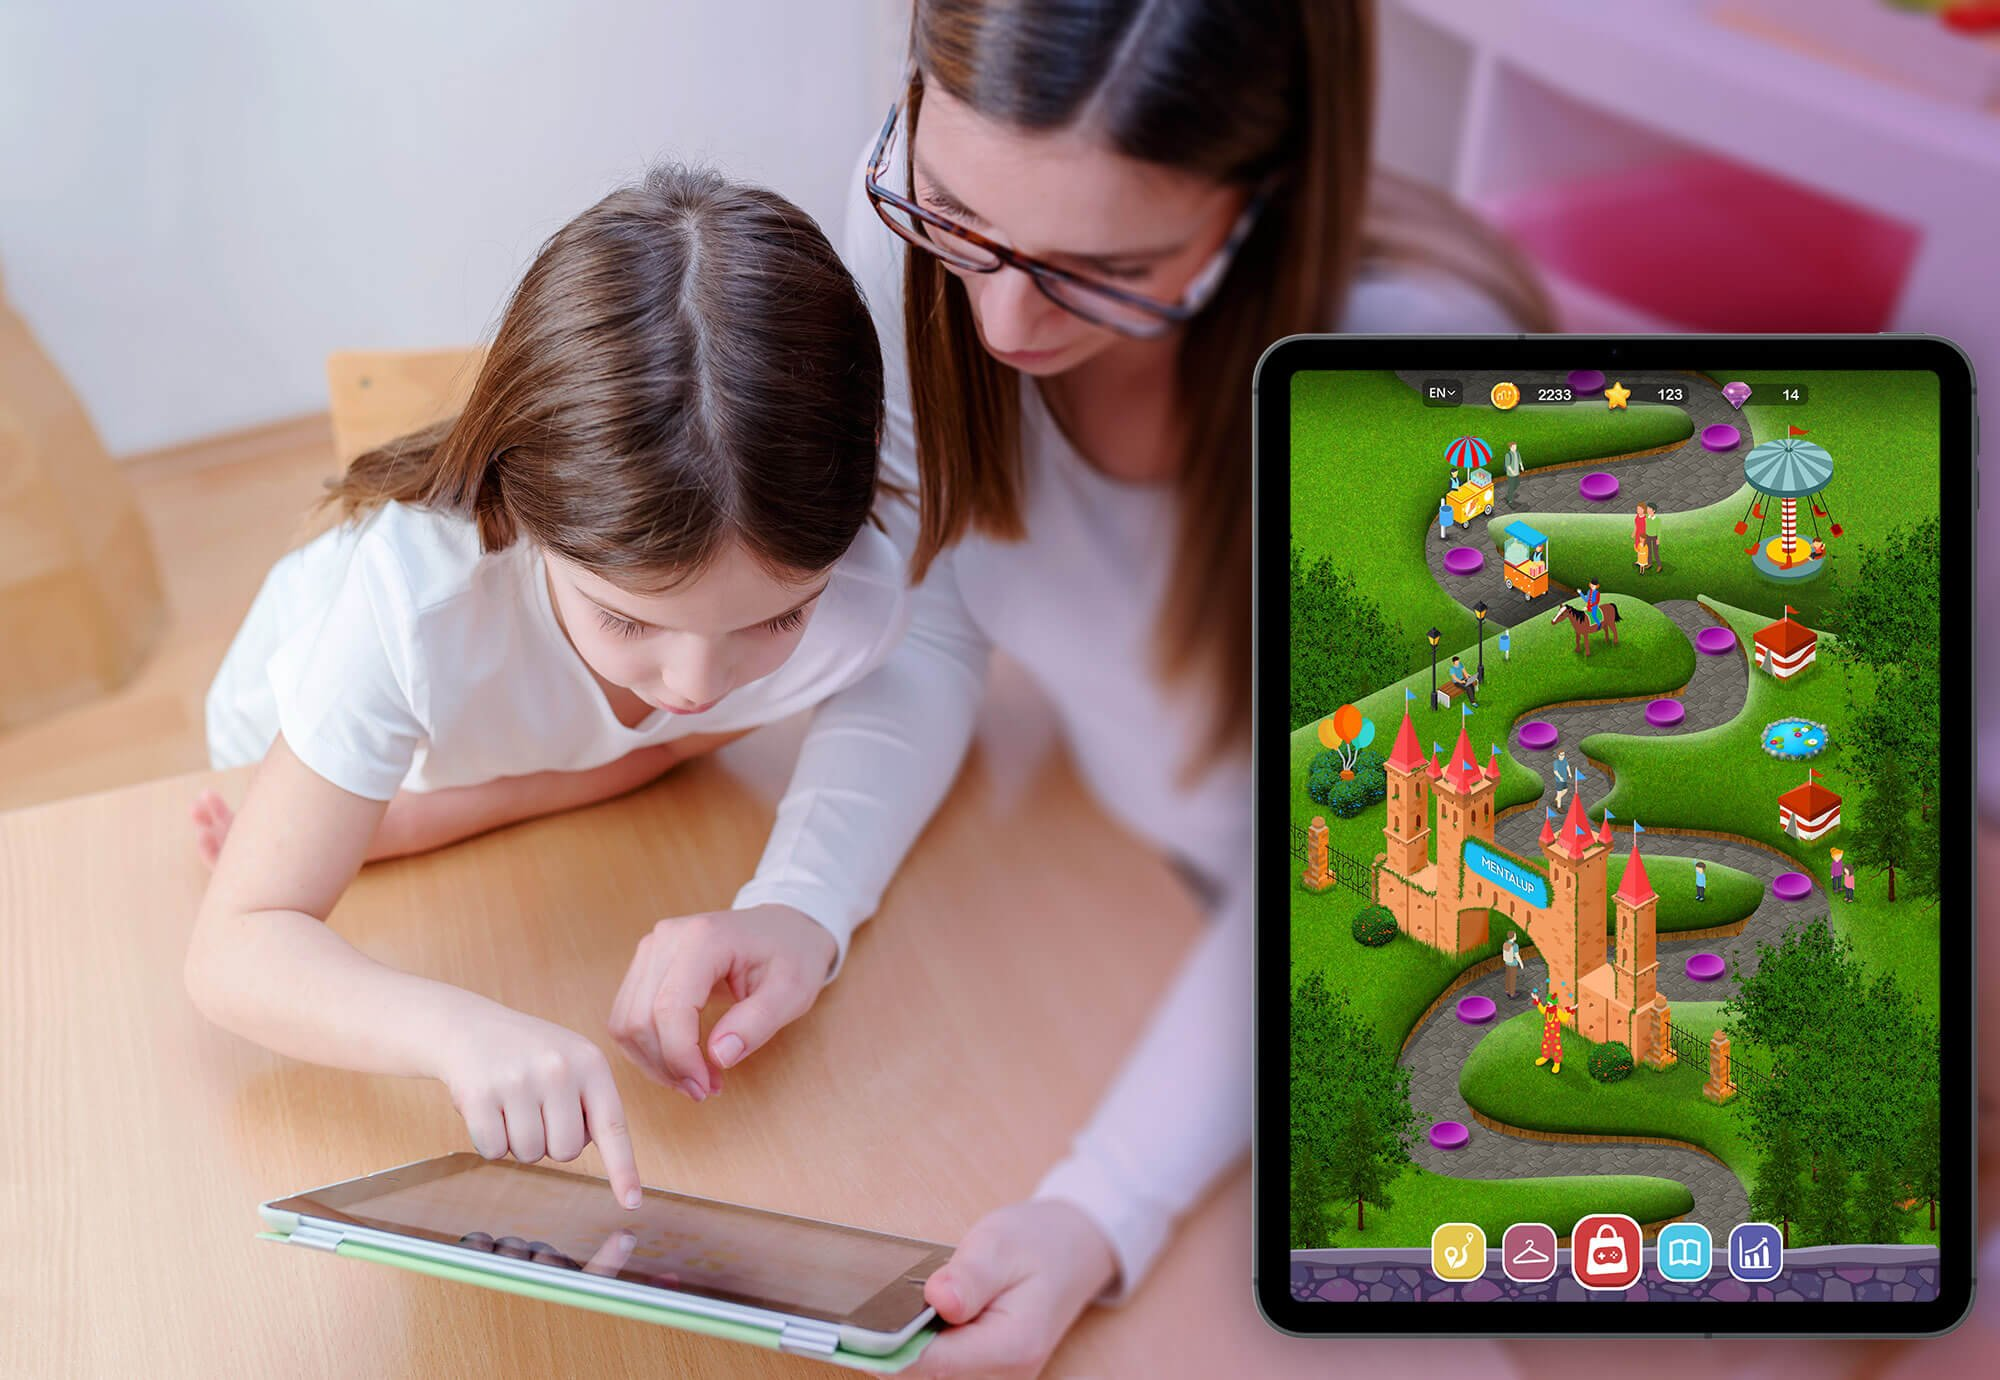 The training platform MentalUP has attracted intense attention as the first and only gamified education platform for children in Turkey.